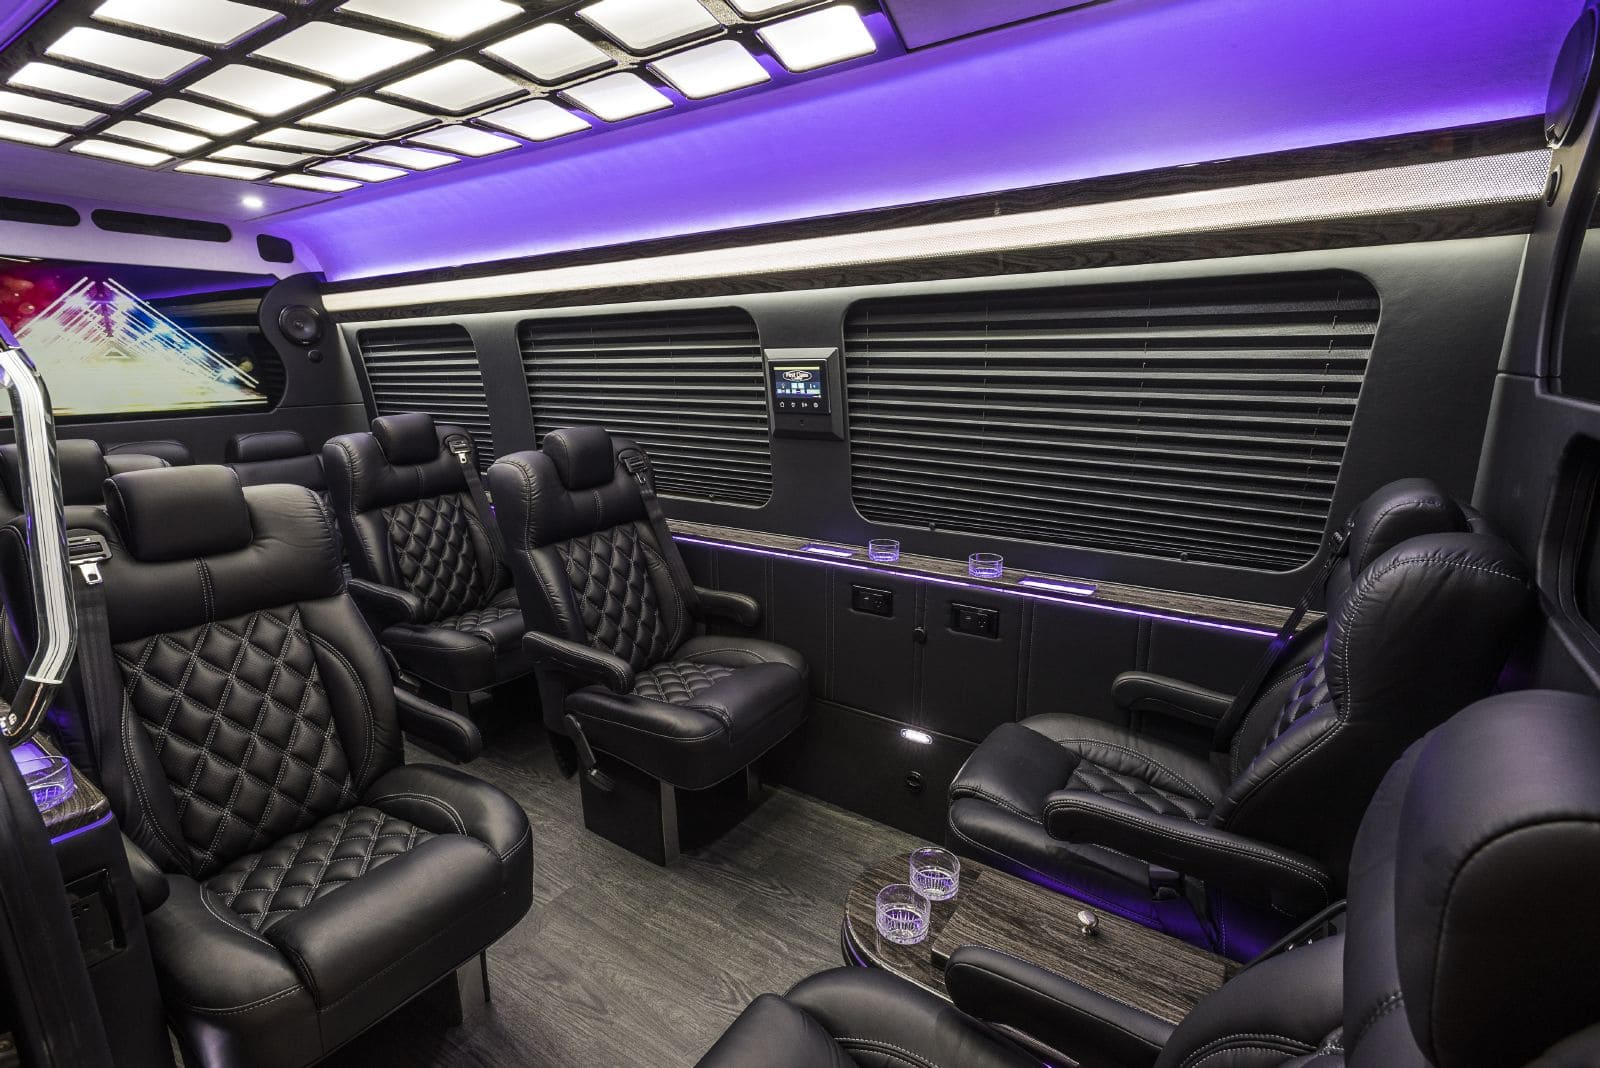 Spacious, black leather interior of the Mercedes Jet Sprinter ready for corporate transporation.